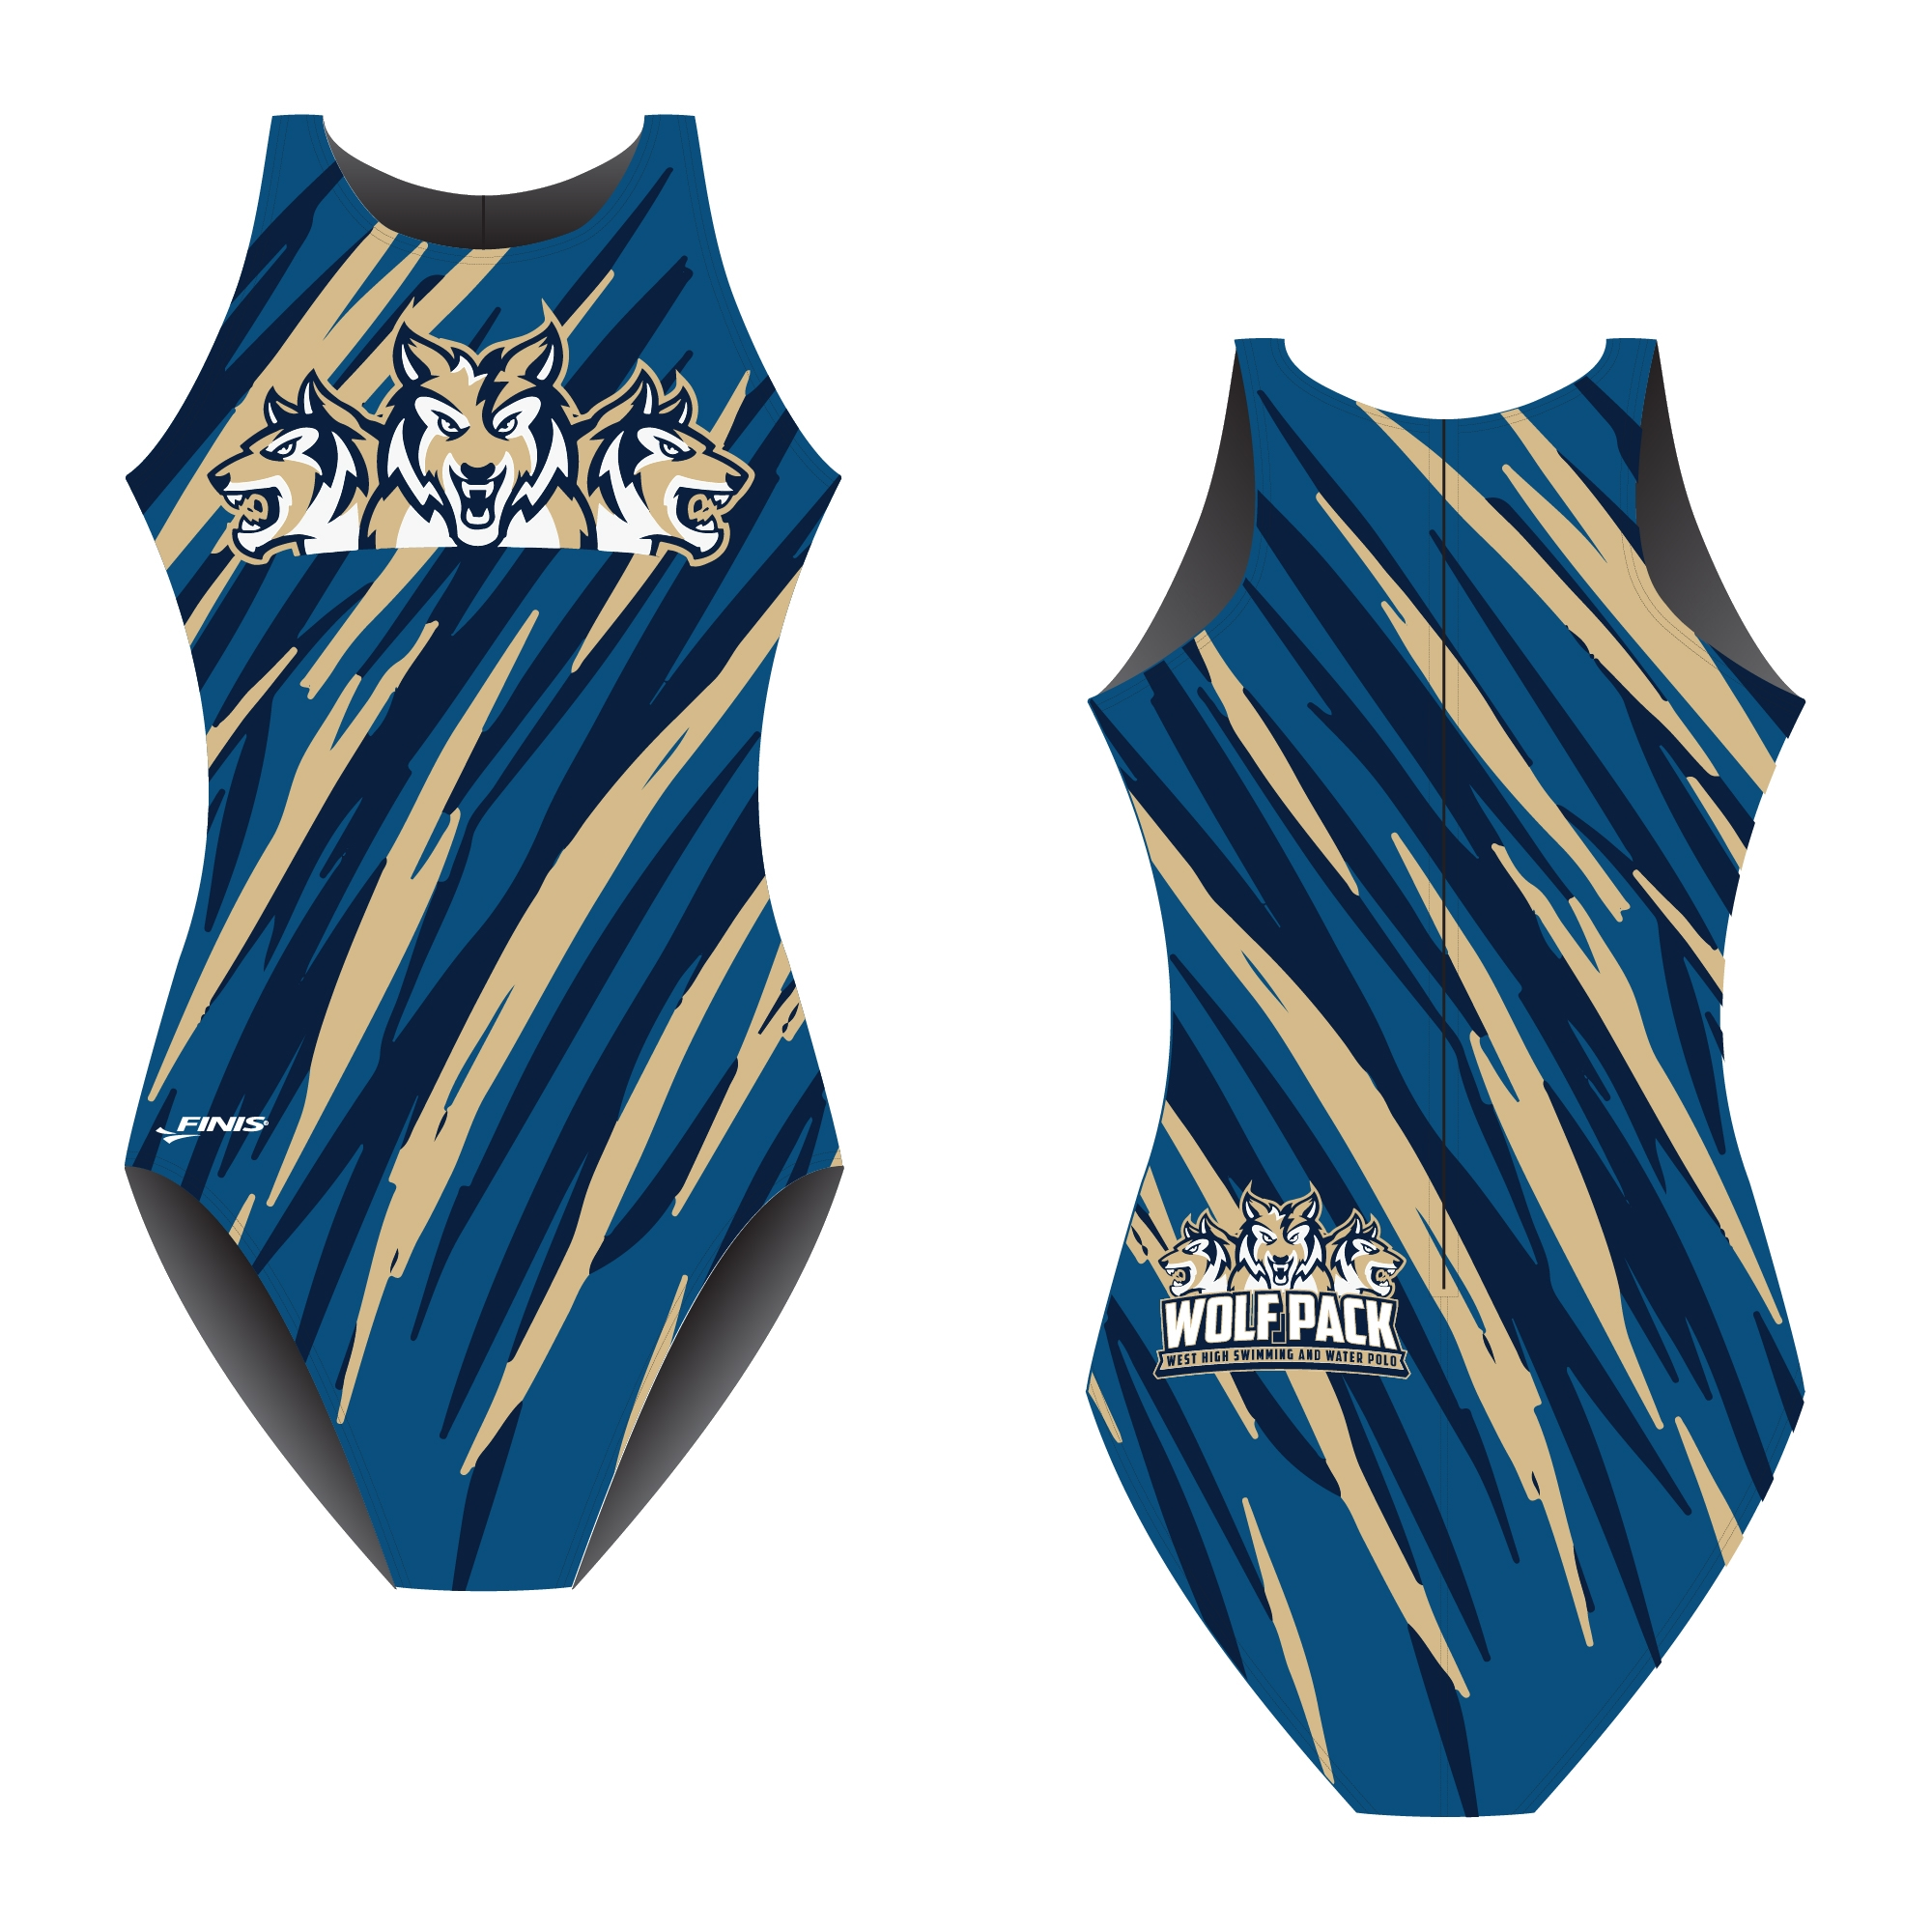 West High swimming and water polo team Wolf pack design proof on a finis custom water polo swimsuit